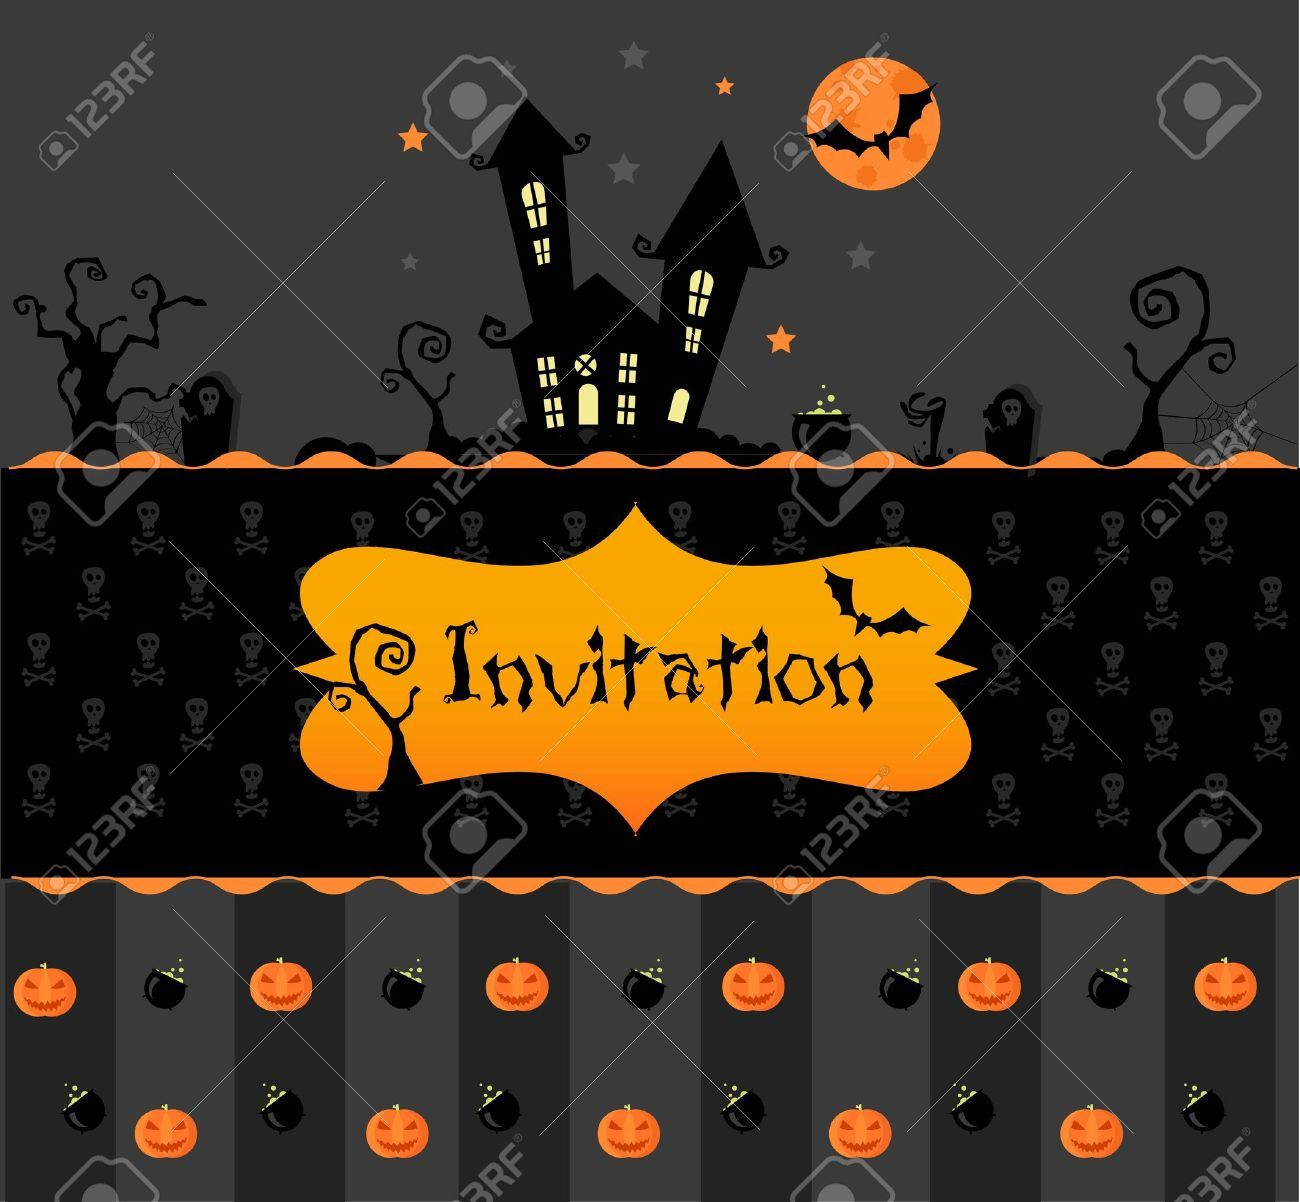 Afficher L Image D Origine Invitation Halloween Carte Invitation Anniversaire Halloween Carte Anniversaire